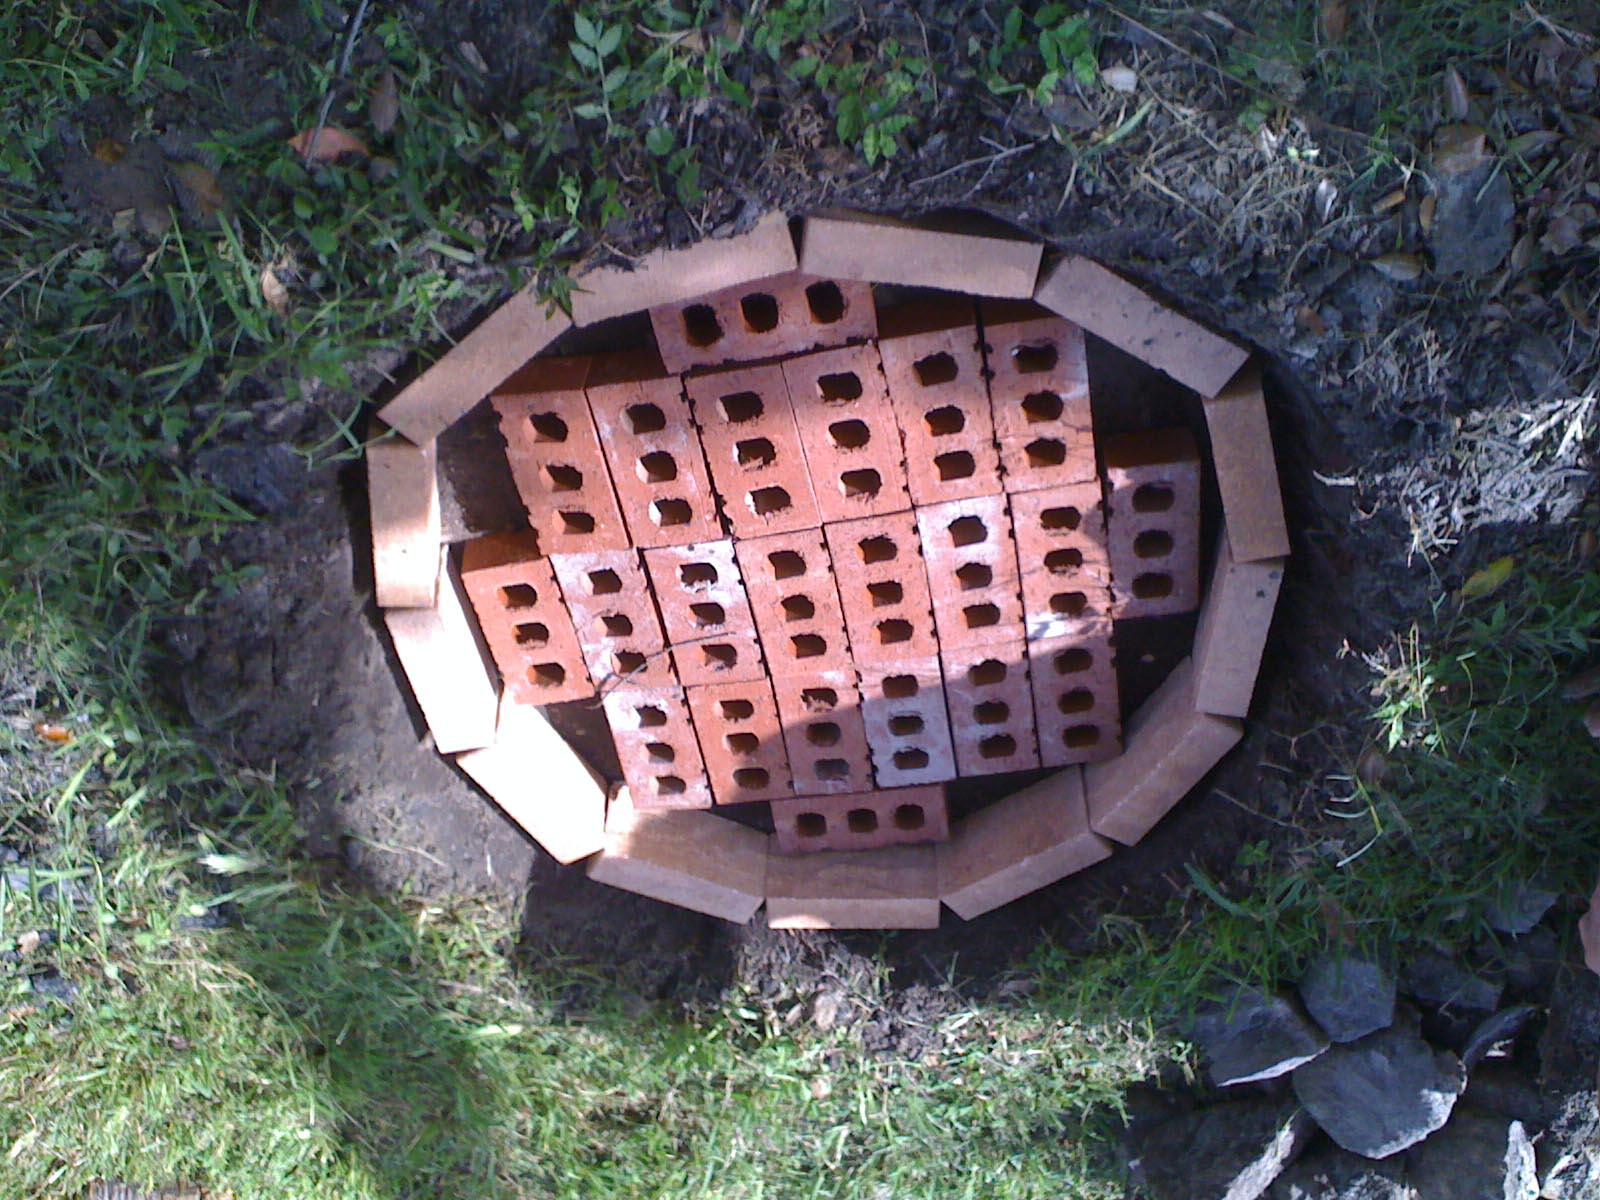 Diy brick fire pit tutorial fire pit design ideas for Brick fire pit construction